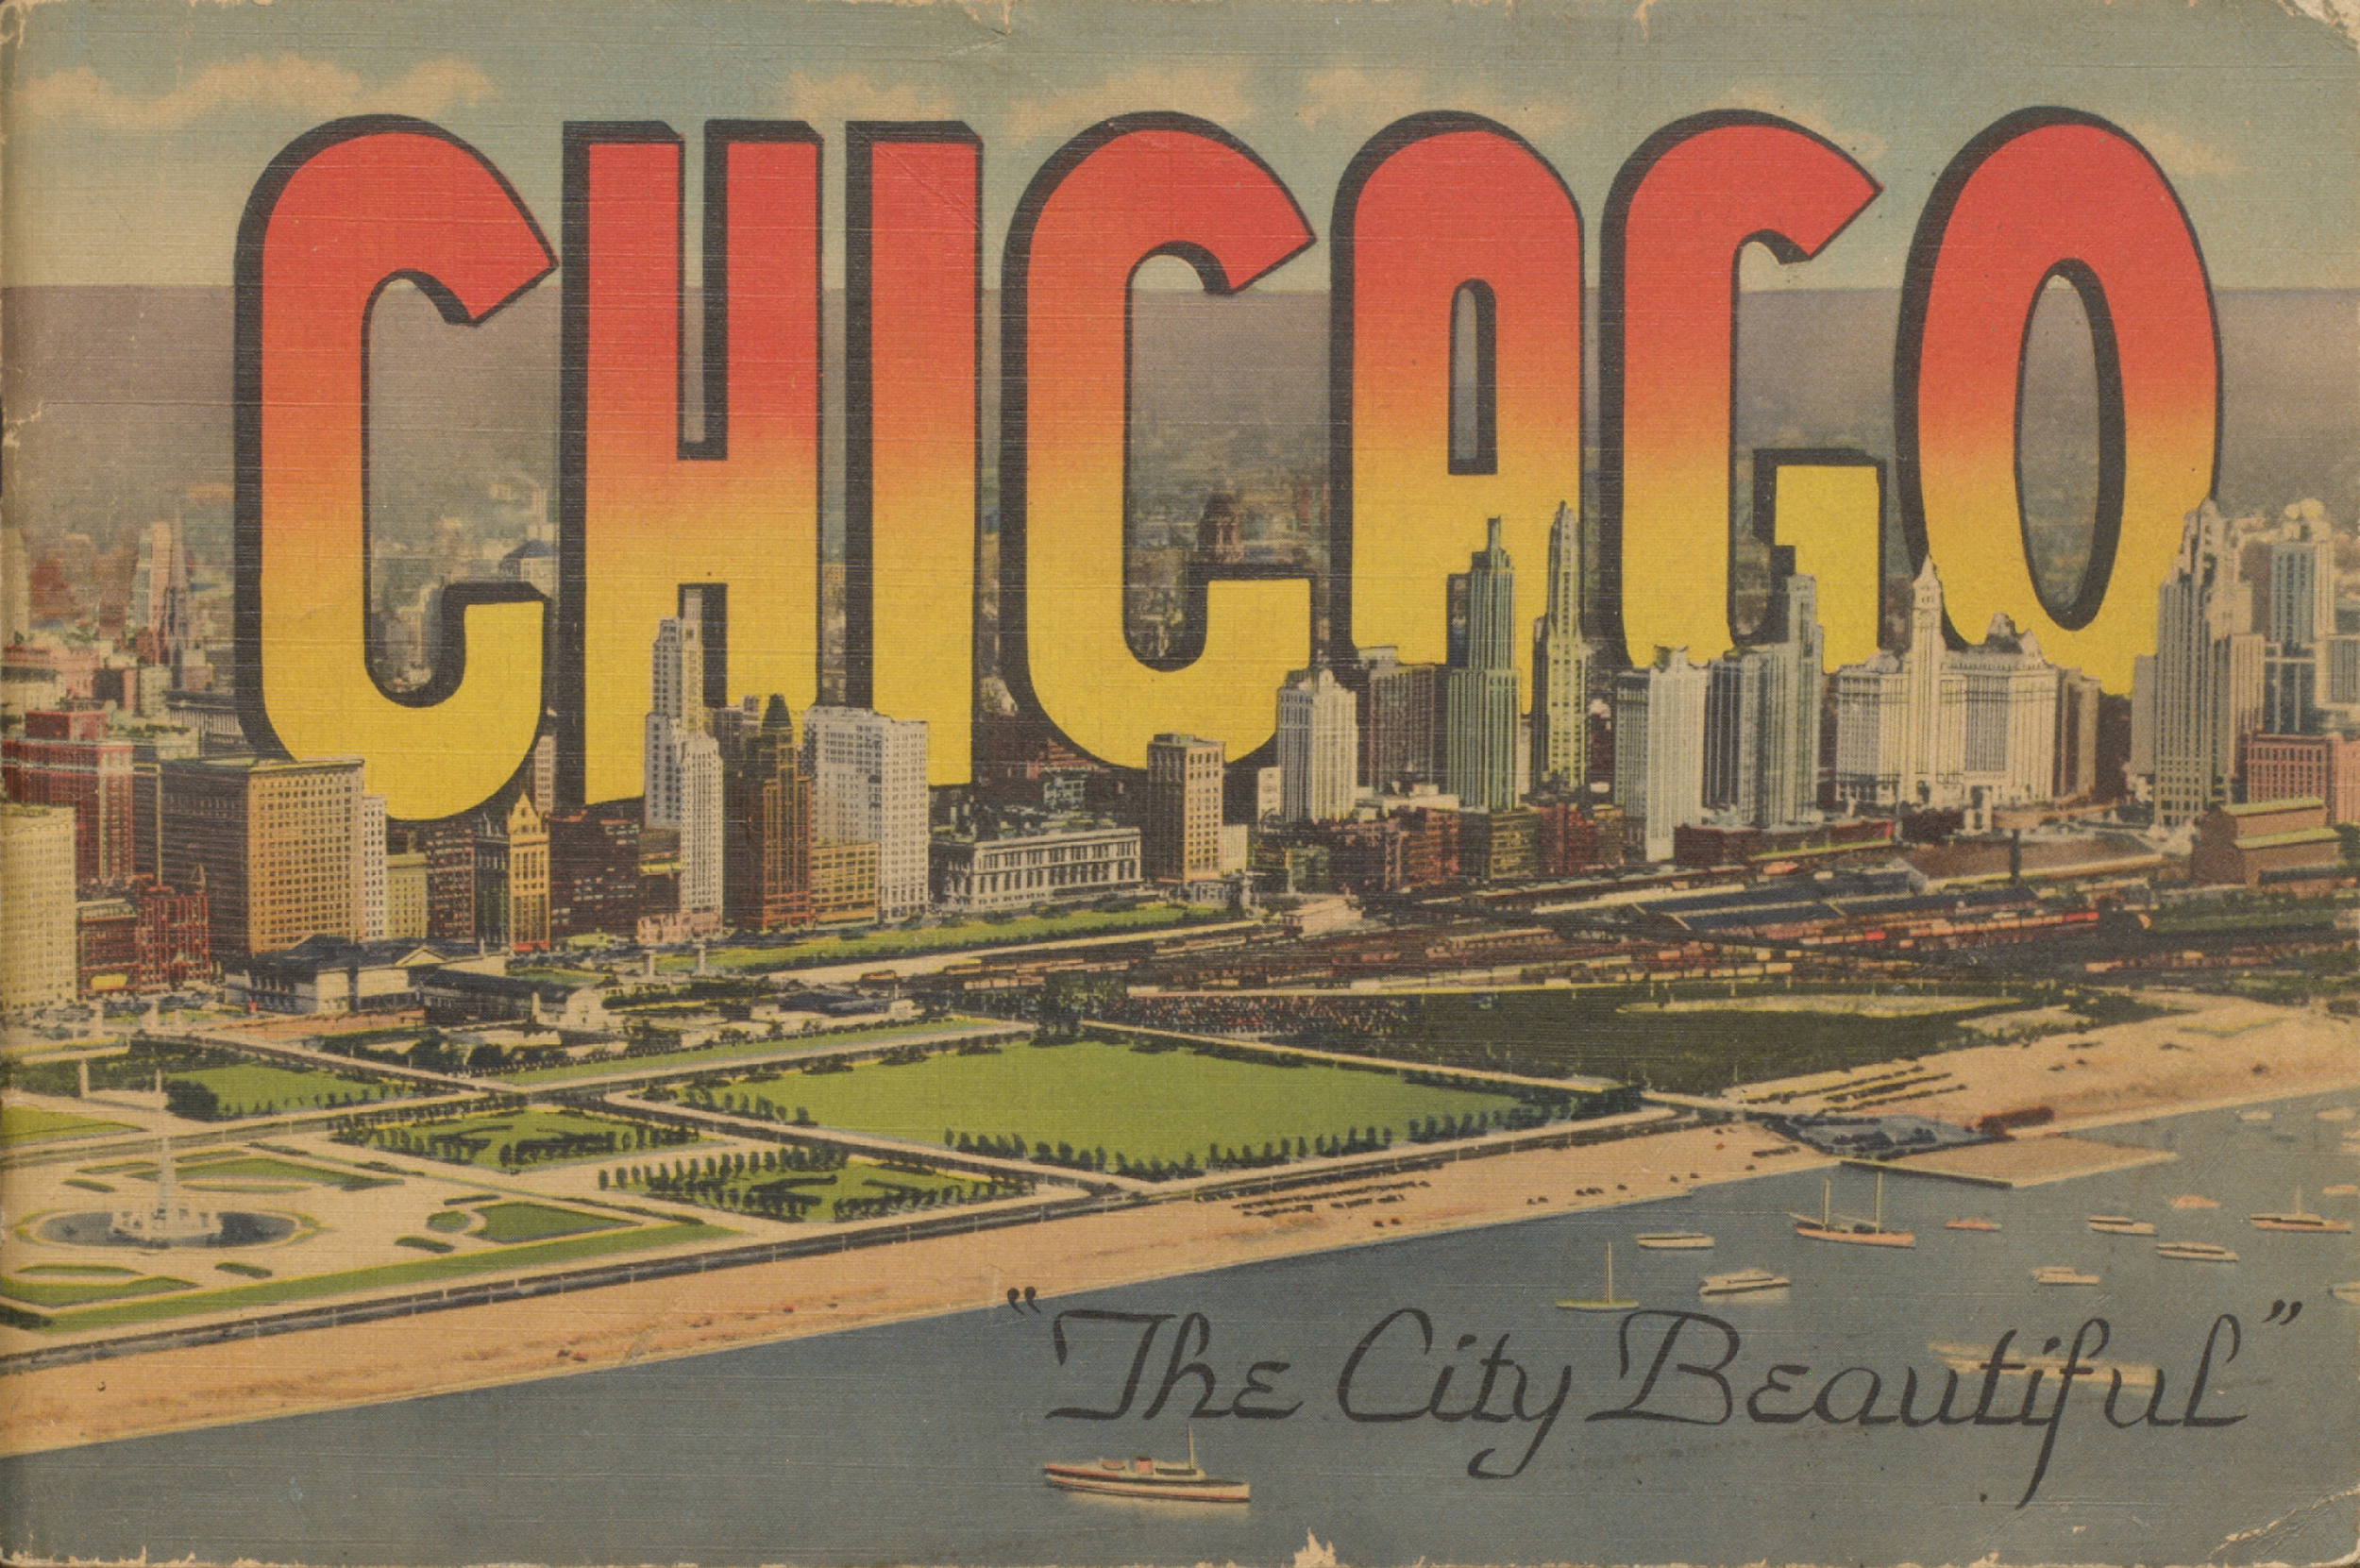 Chicago, the city beautiful. Cover.